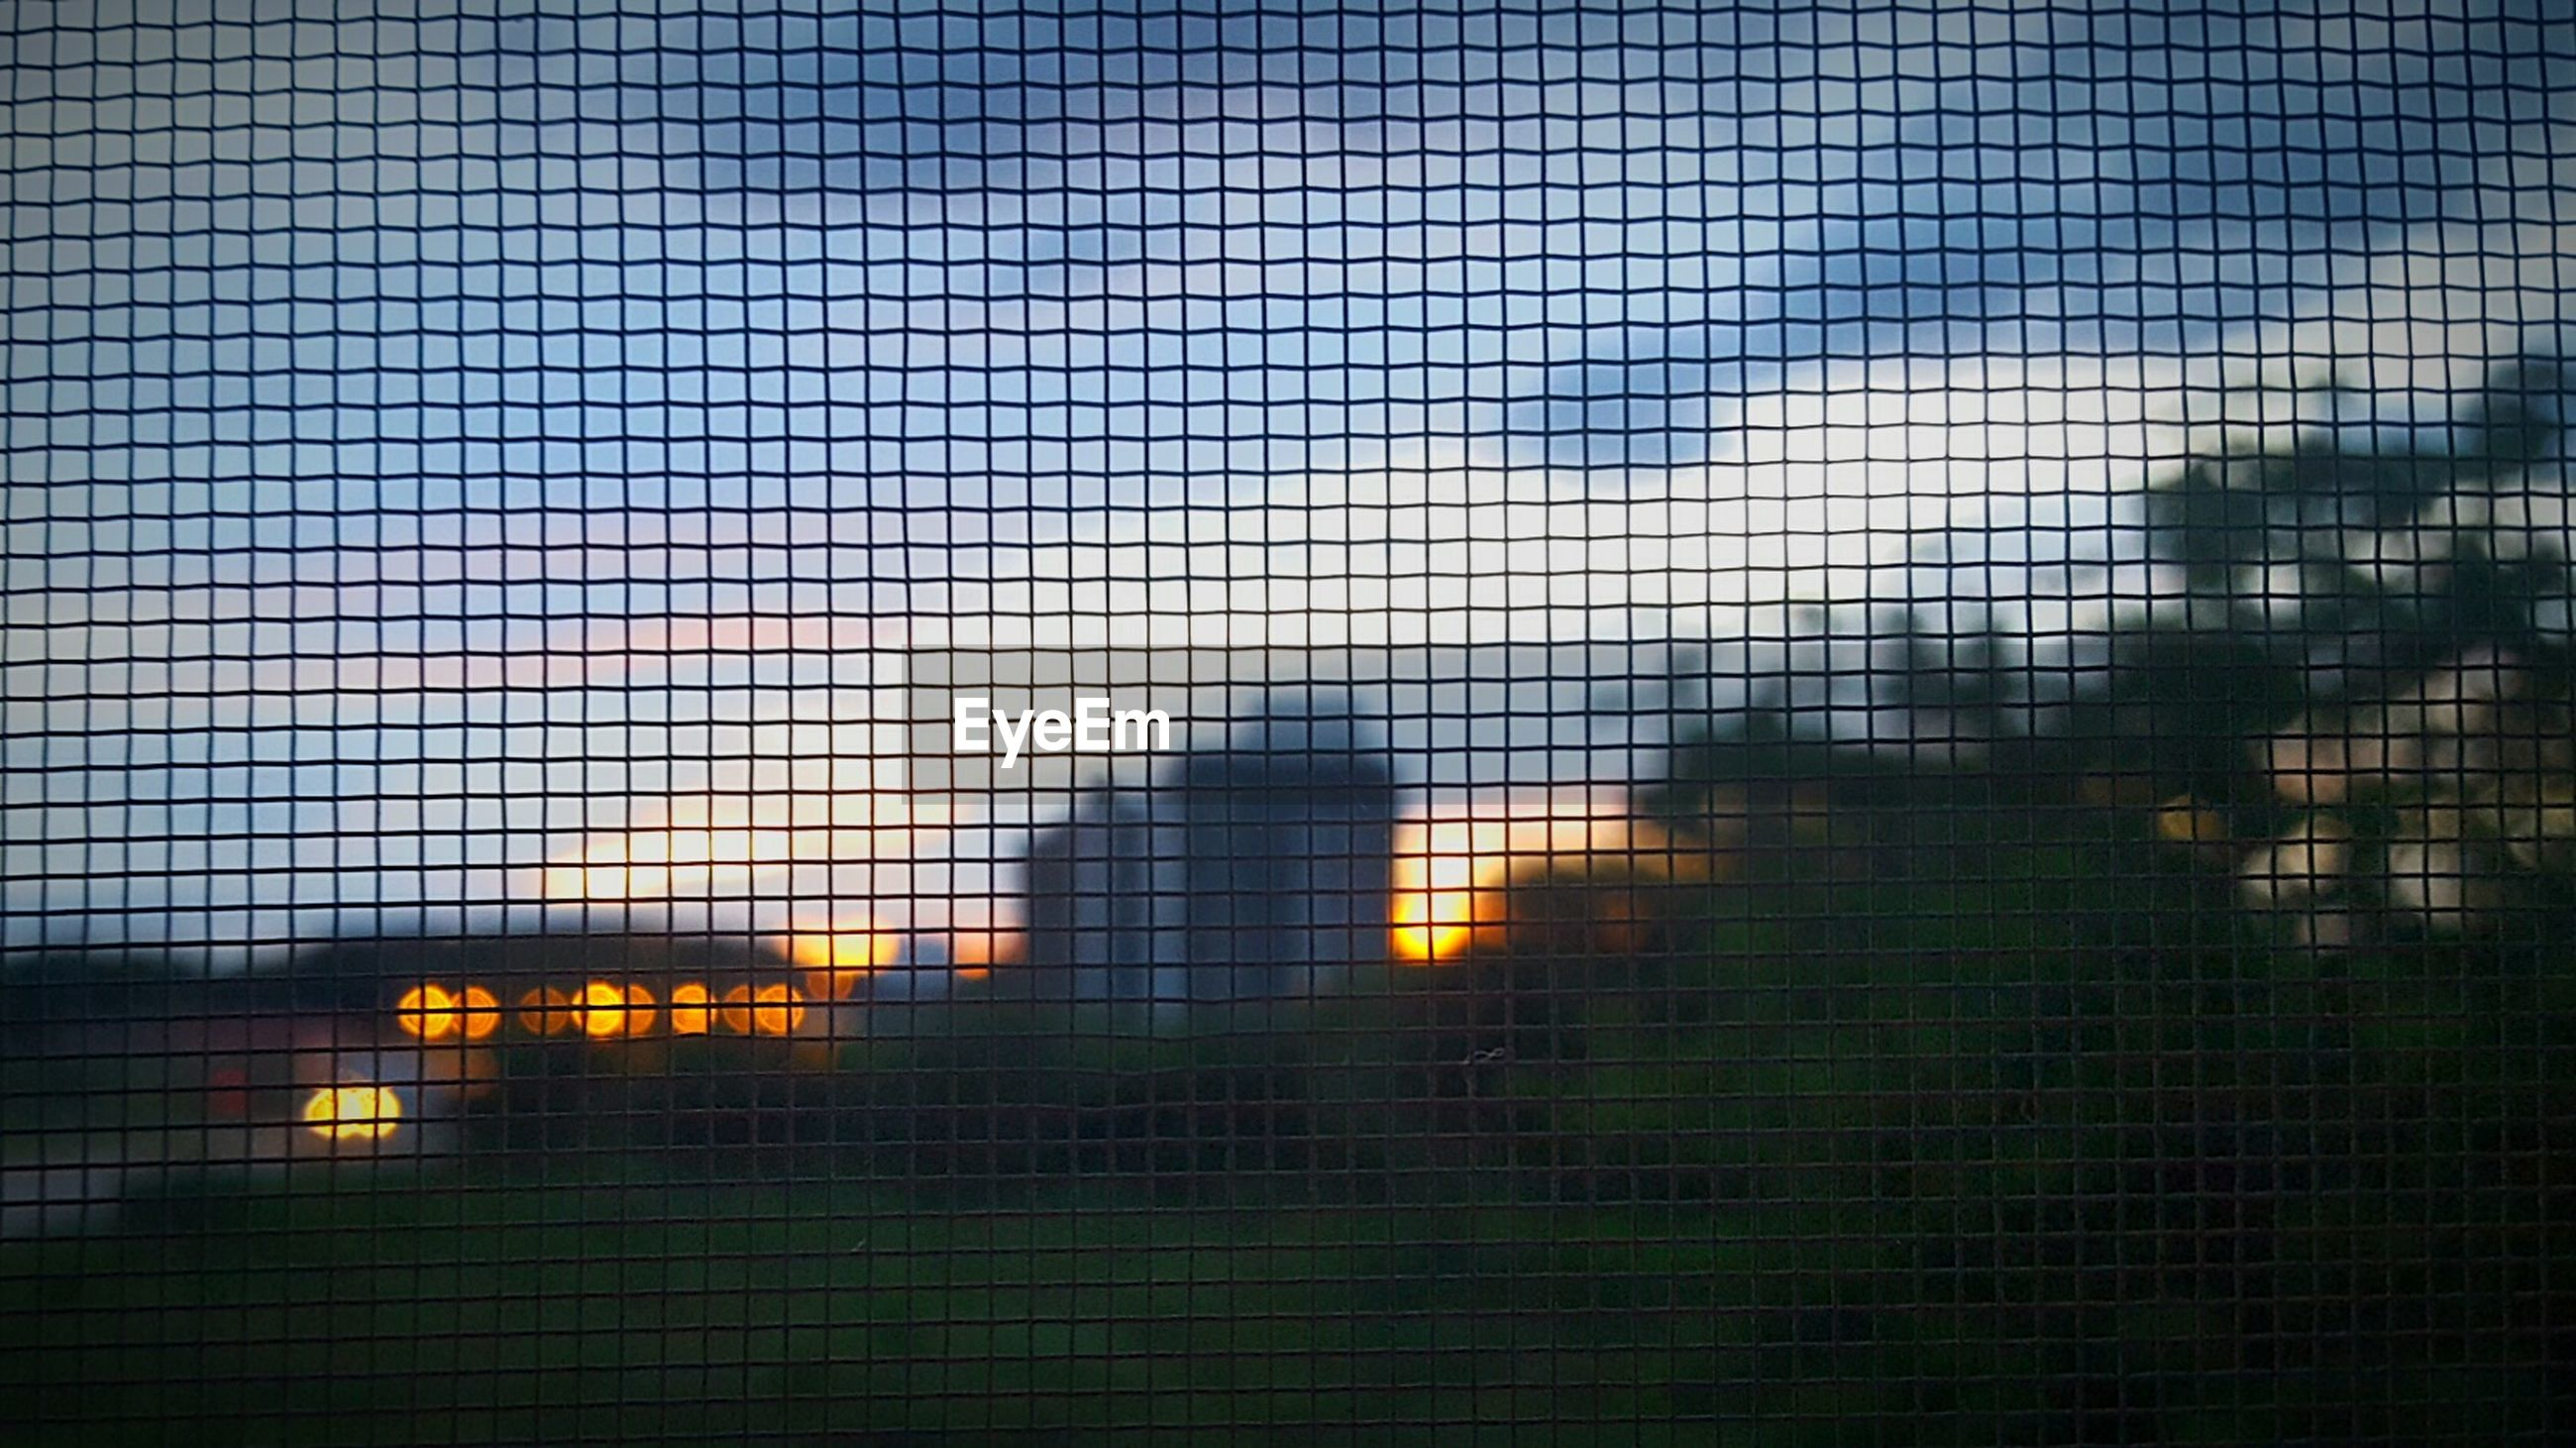 no people, pattern, chainlink fence, sky, architecture, built structure, sunset, building exterior, close-up, day, outdoors